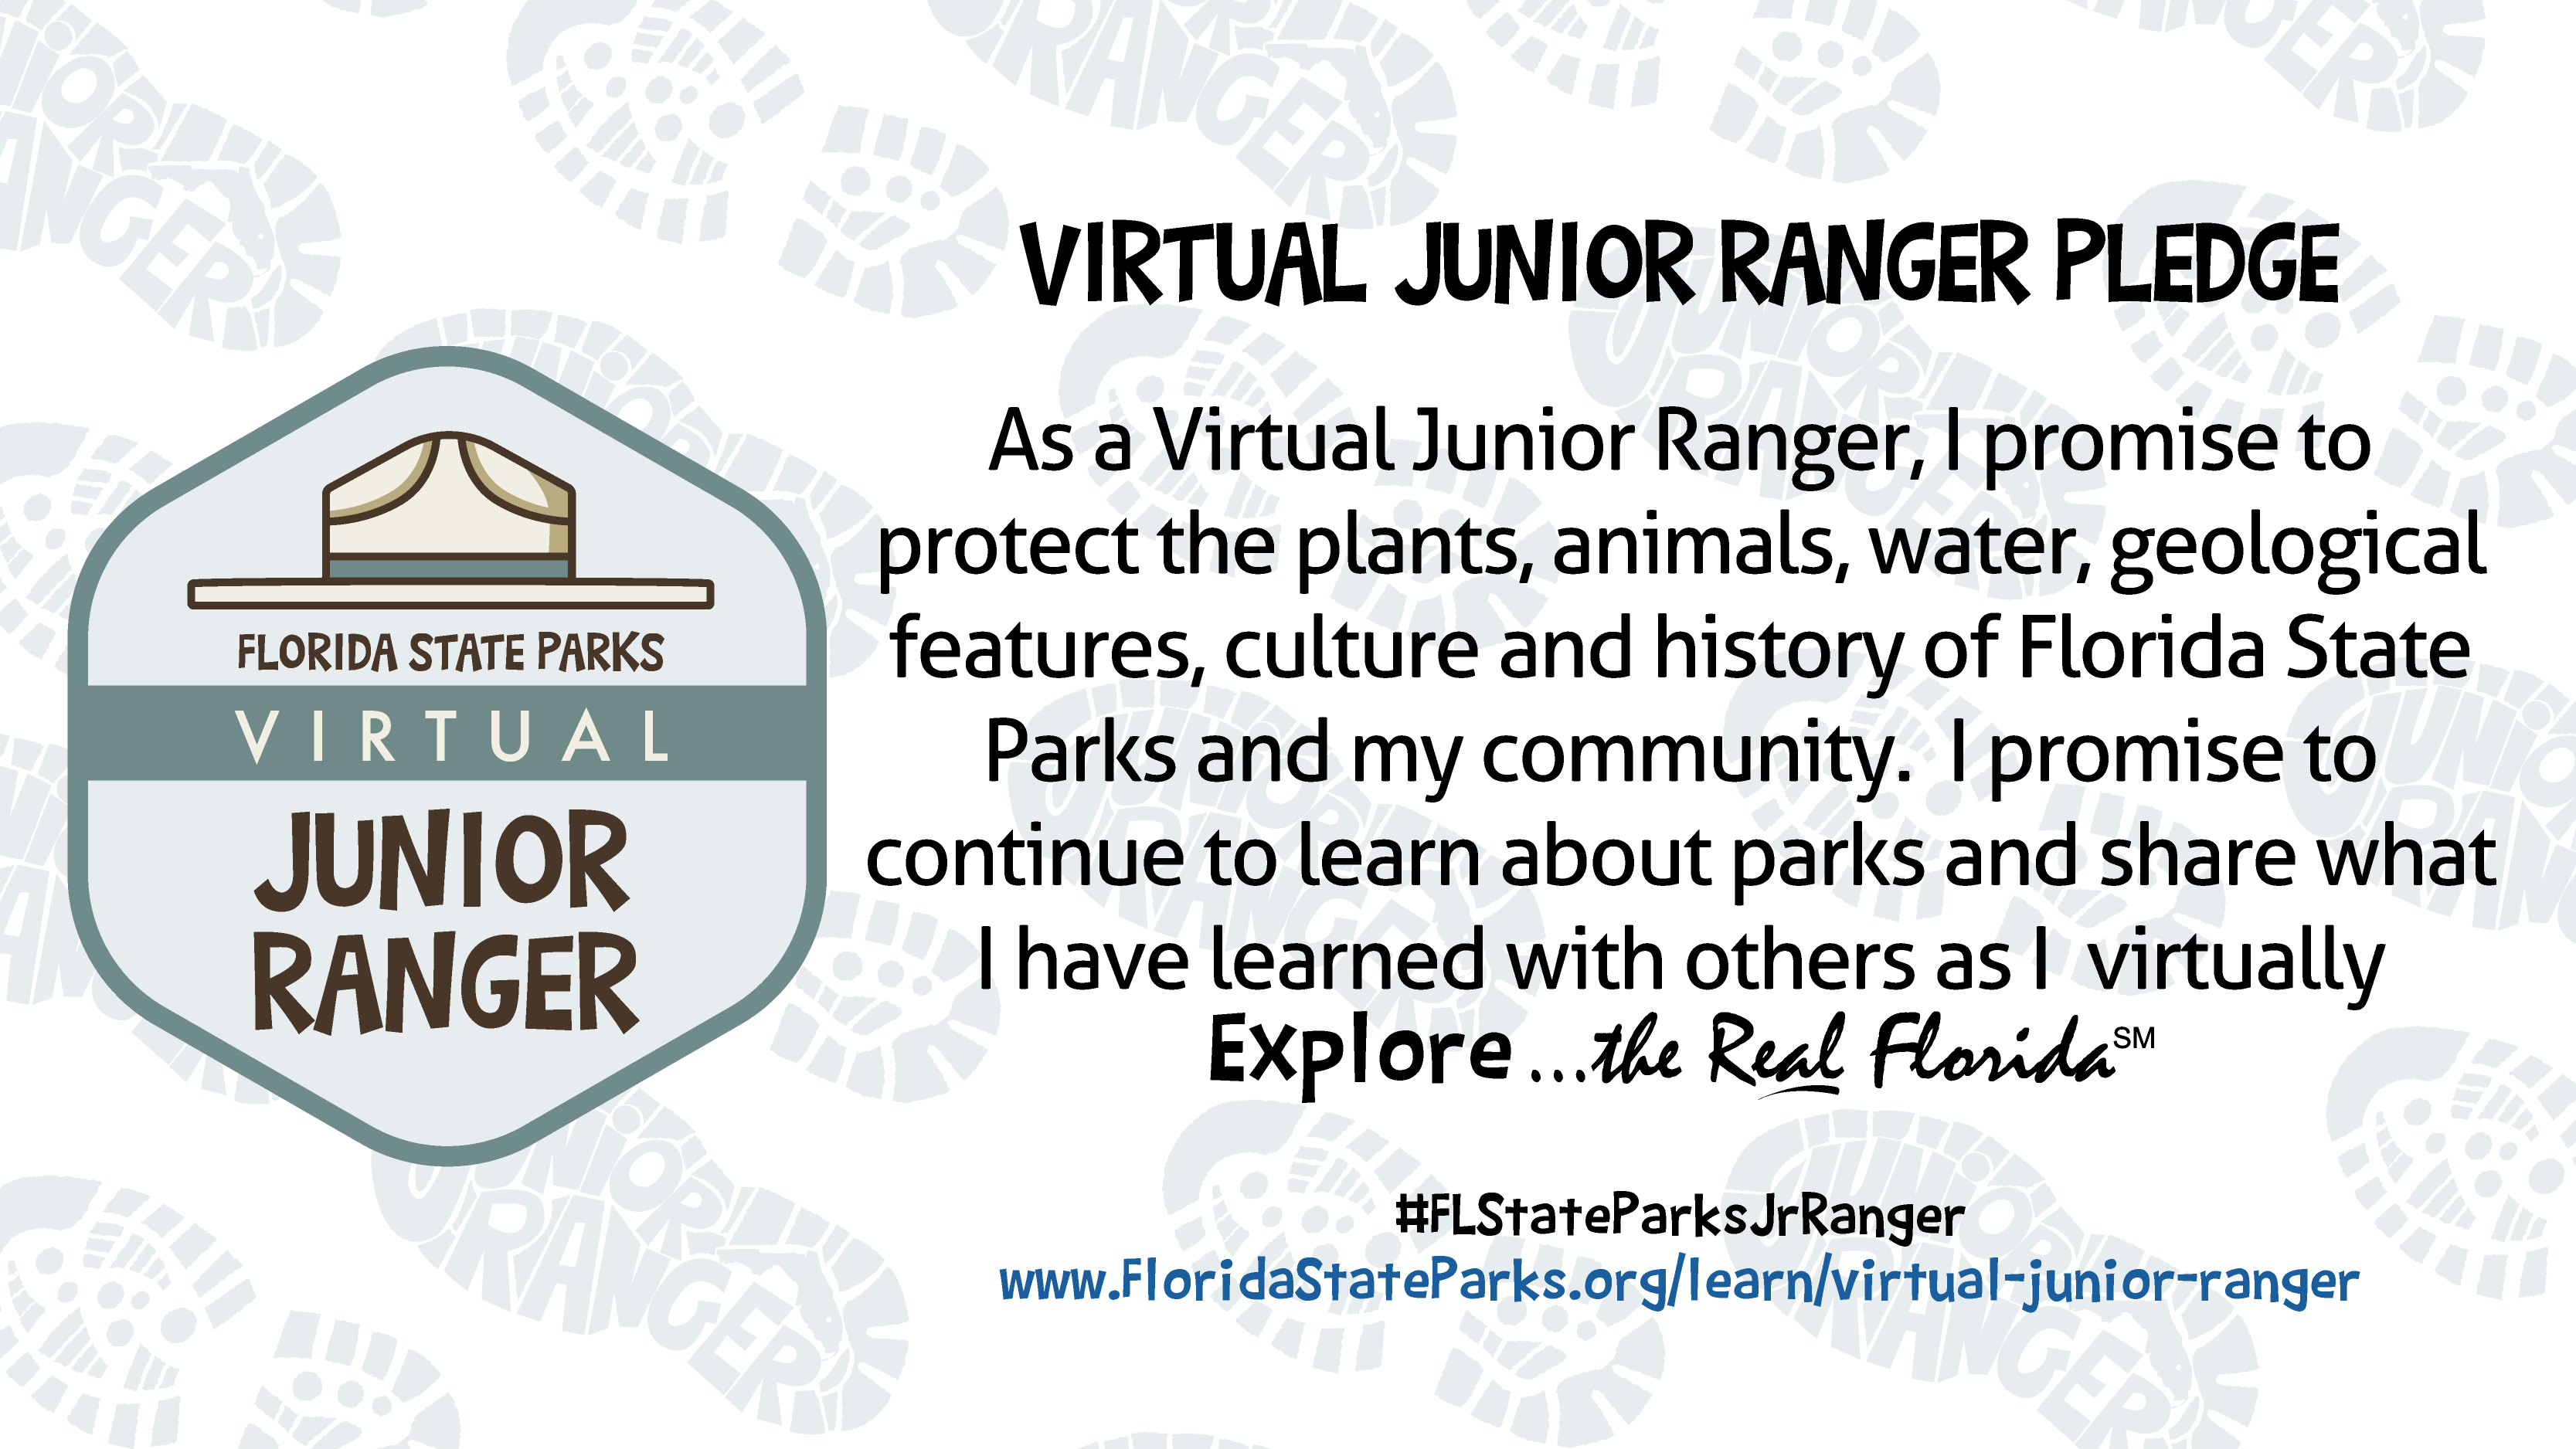 As a Virtual Junior Ranger, I promise to protect the plants, animals, water, geological features, culture and history of Florida State Parks and my community. I promise to continue to learn about parks and share what I have learned with others as I virtually explore the real Florida.